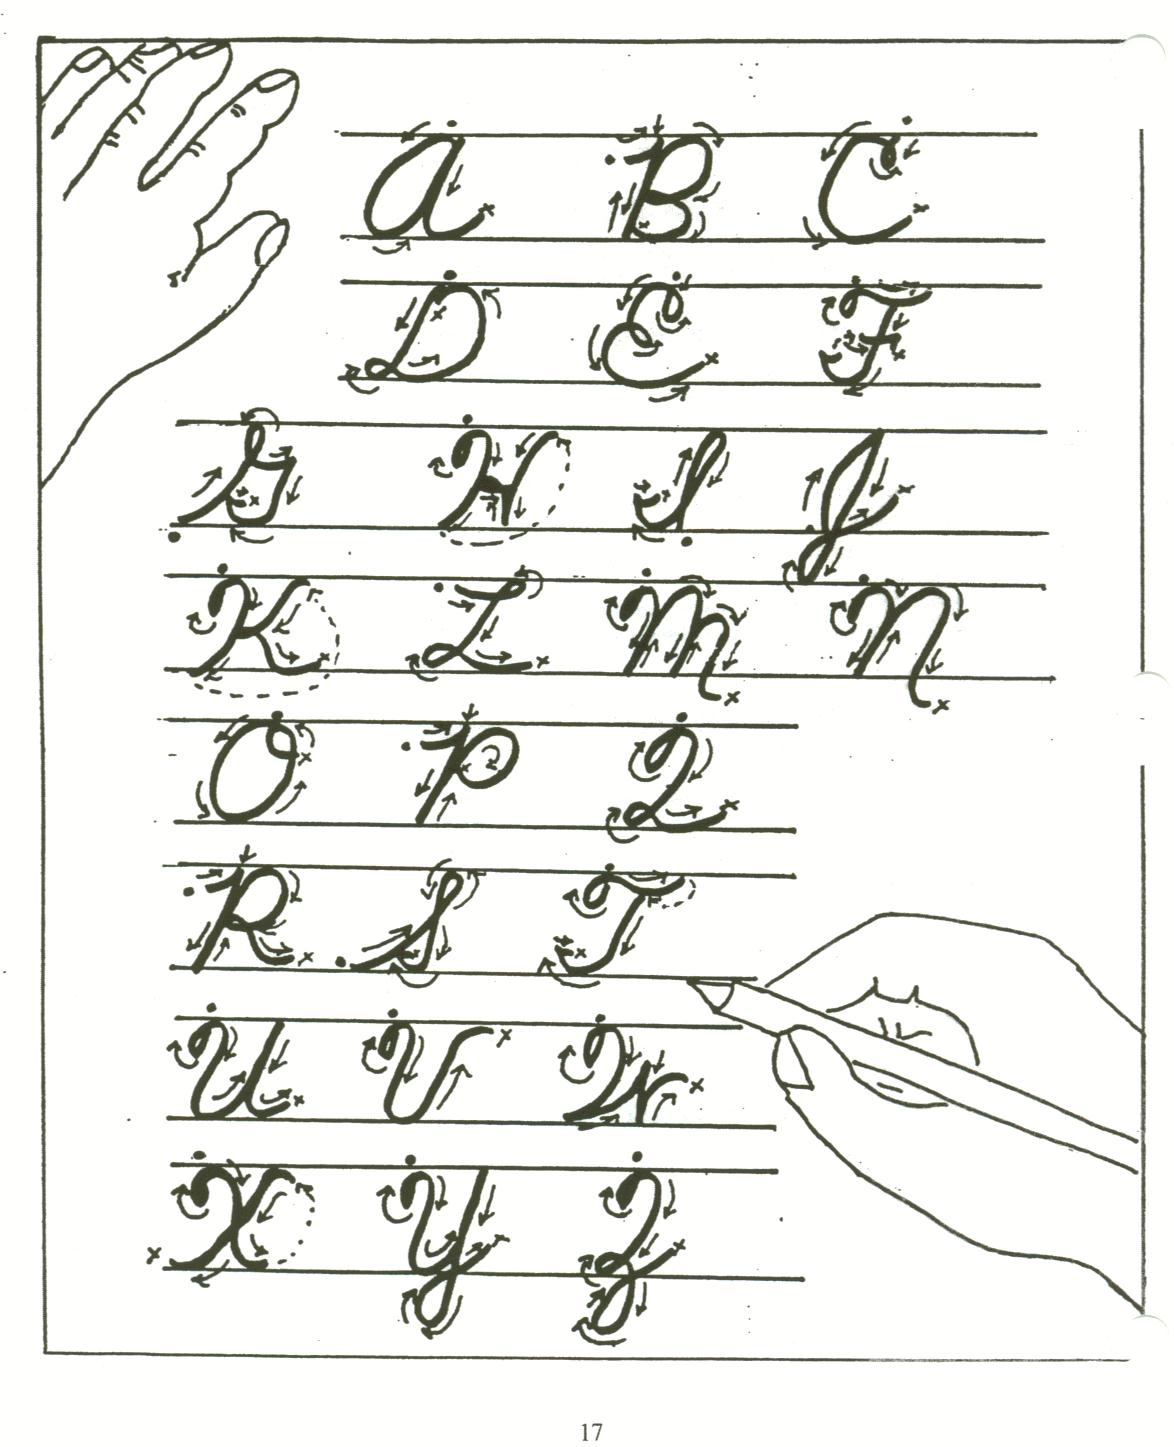 advanced cursive sheets practice - nderadraco28's soup